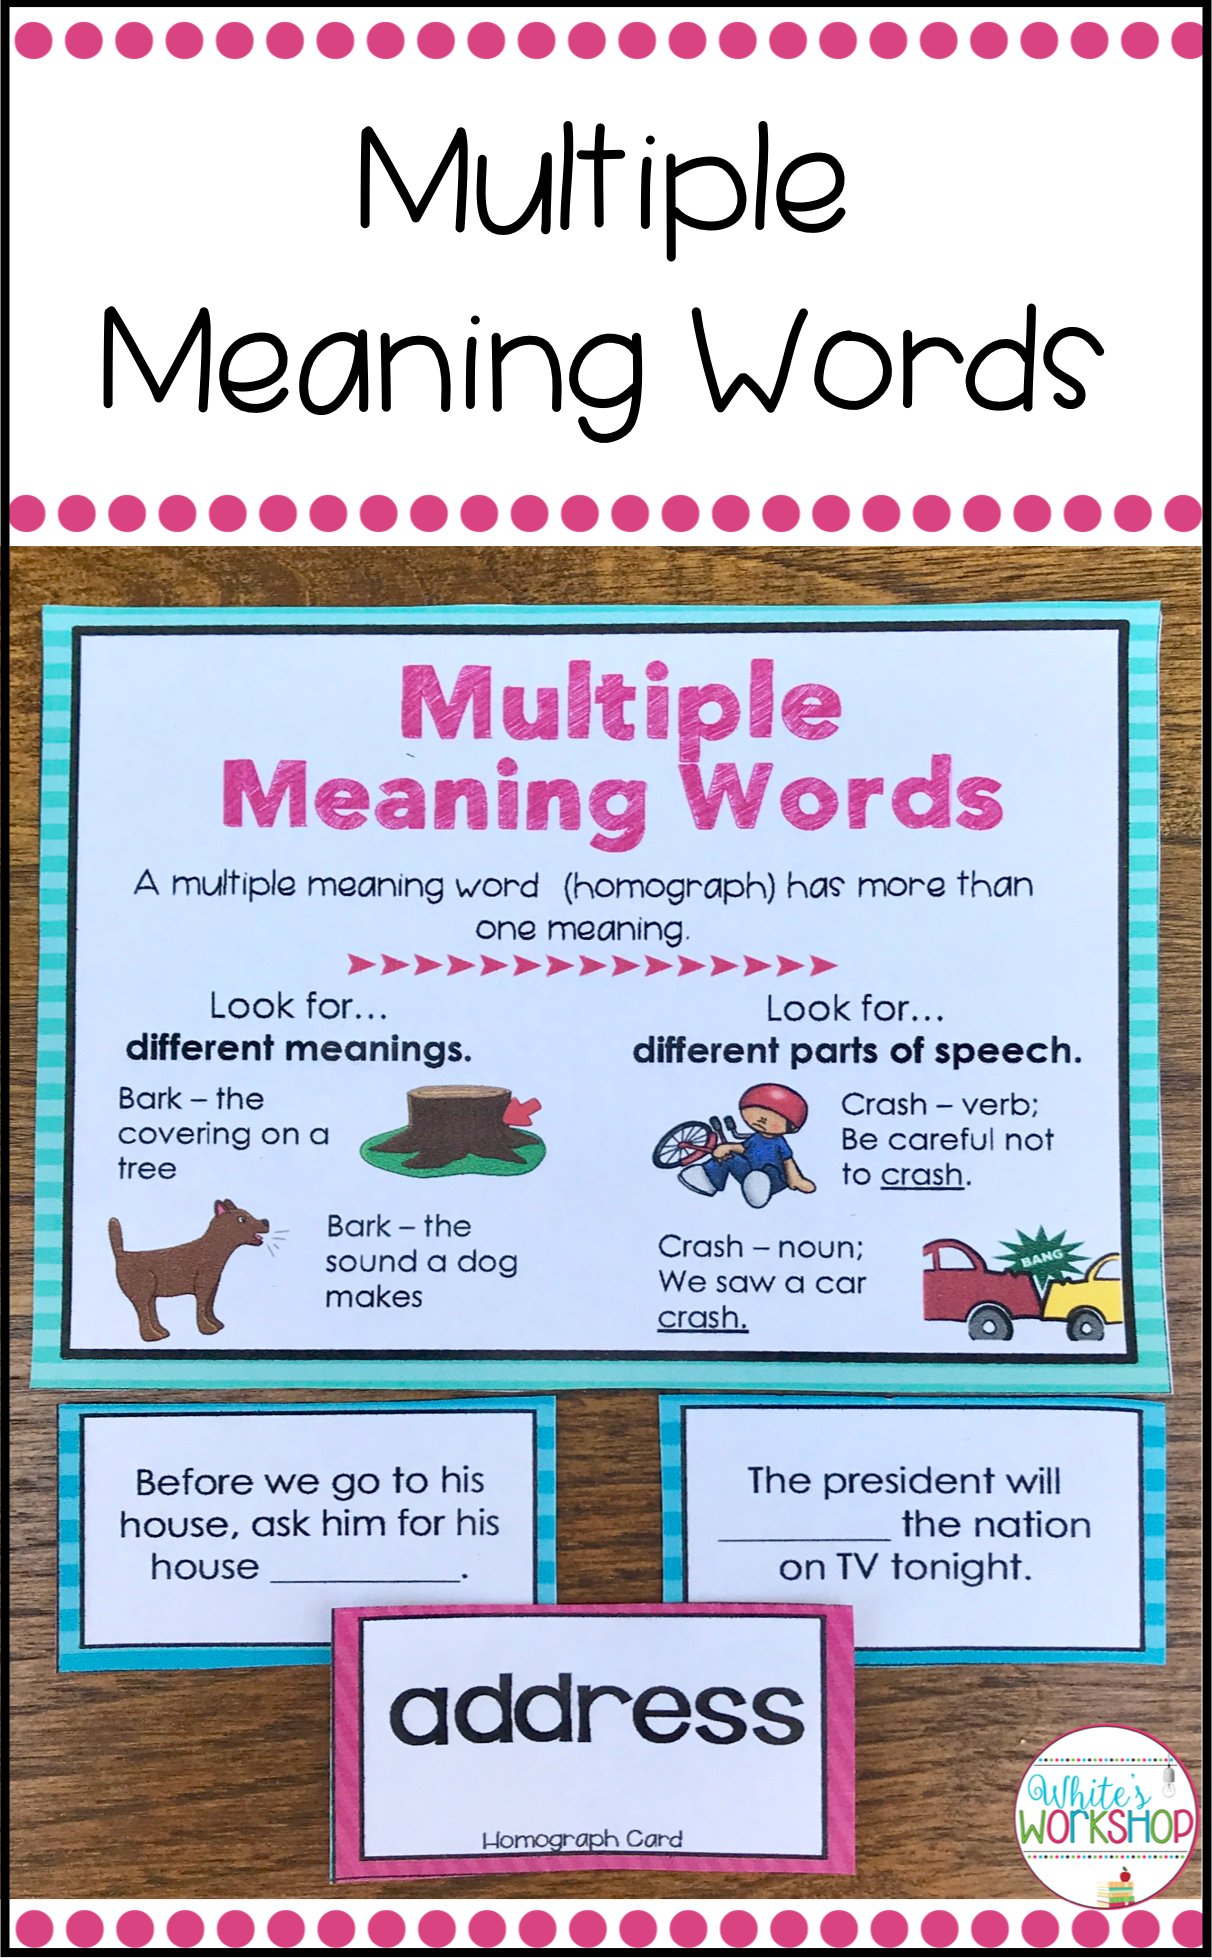 Multiple Meaning Words Activities Bundle | White's Workshop